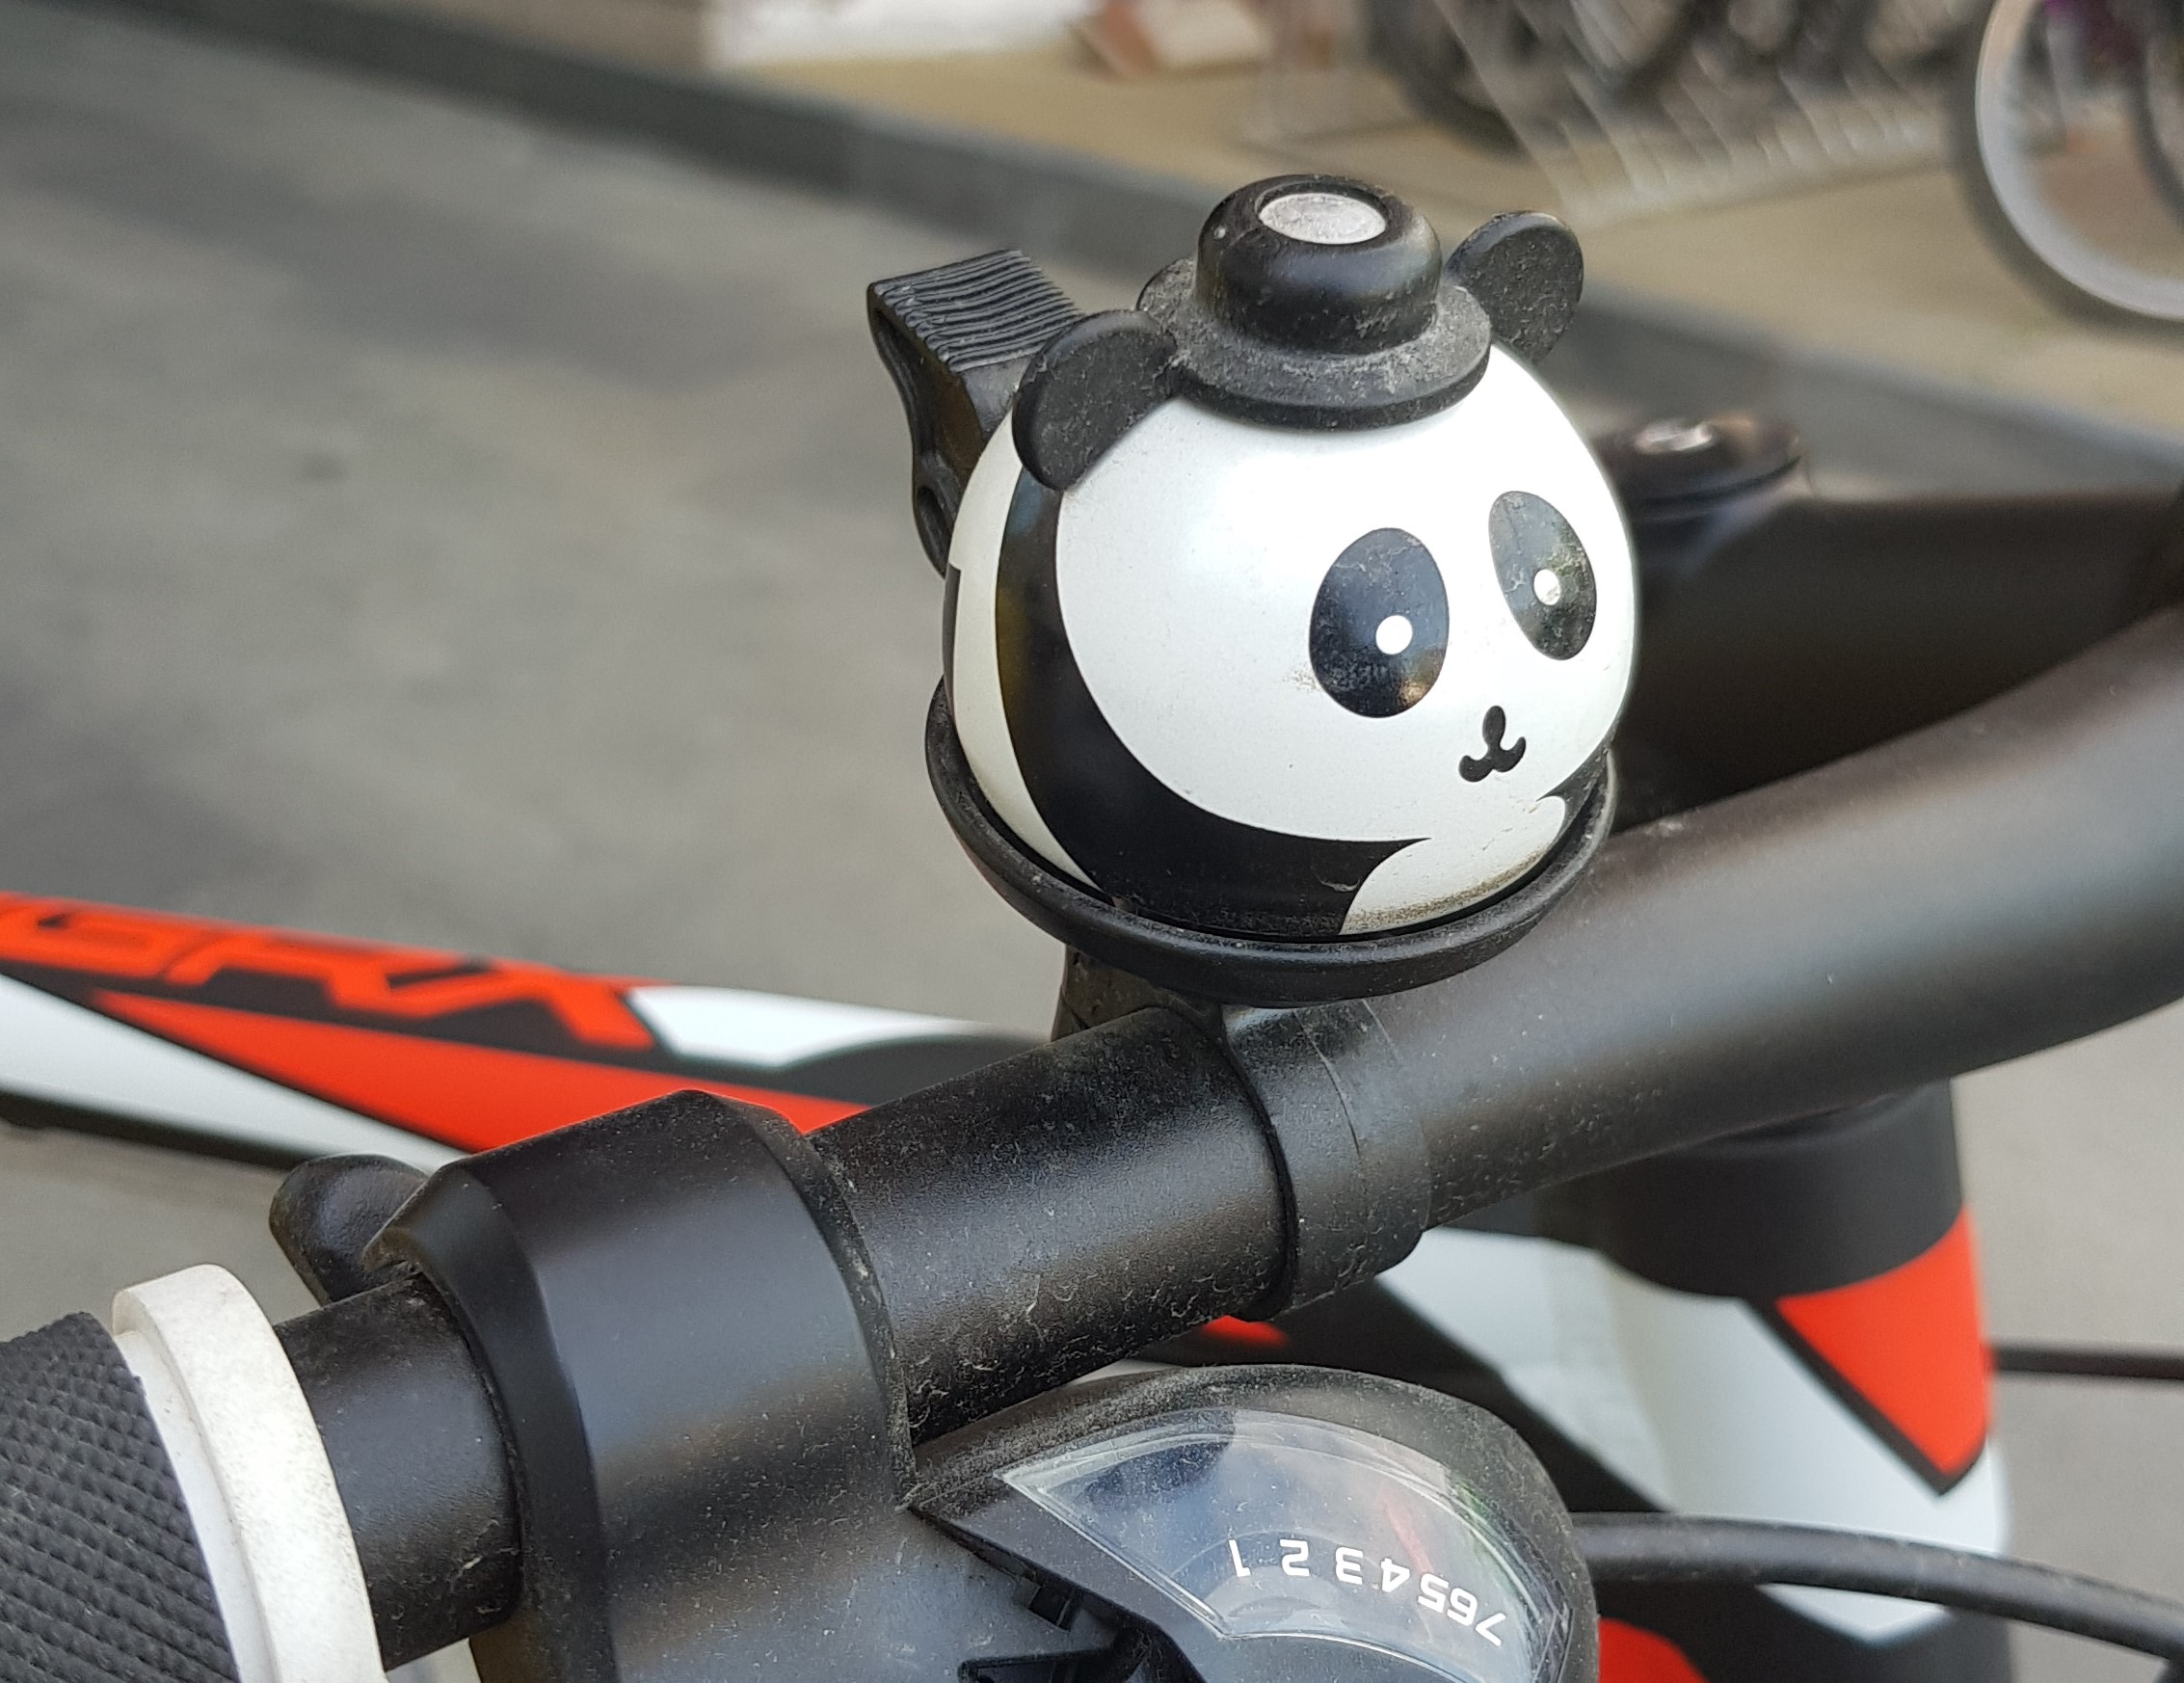 A bike bell can make you happy - CLARA blog